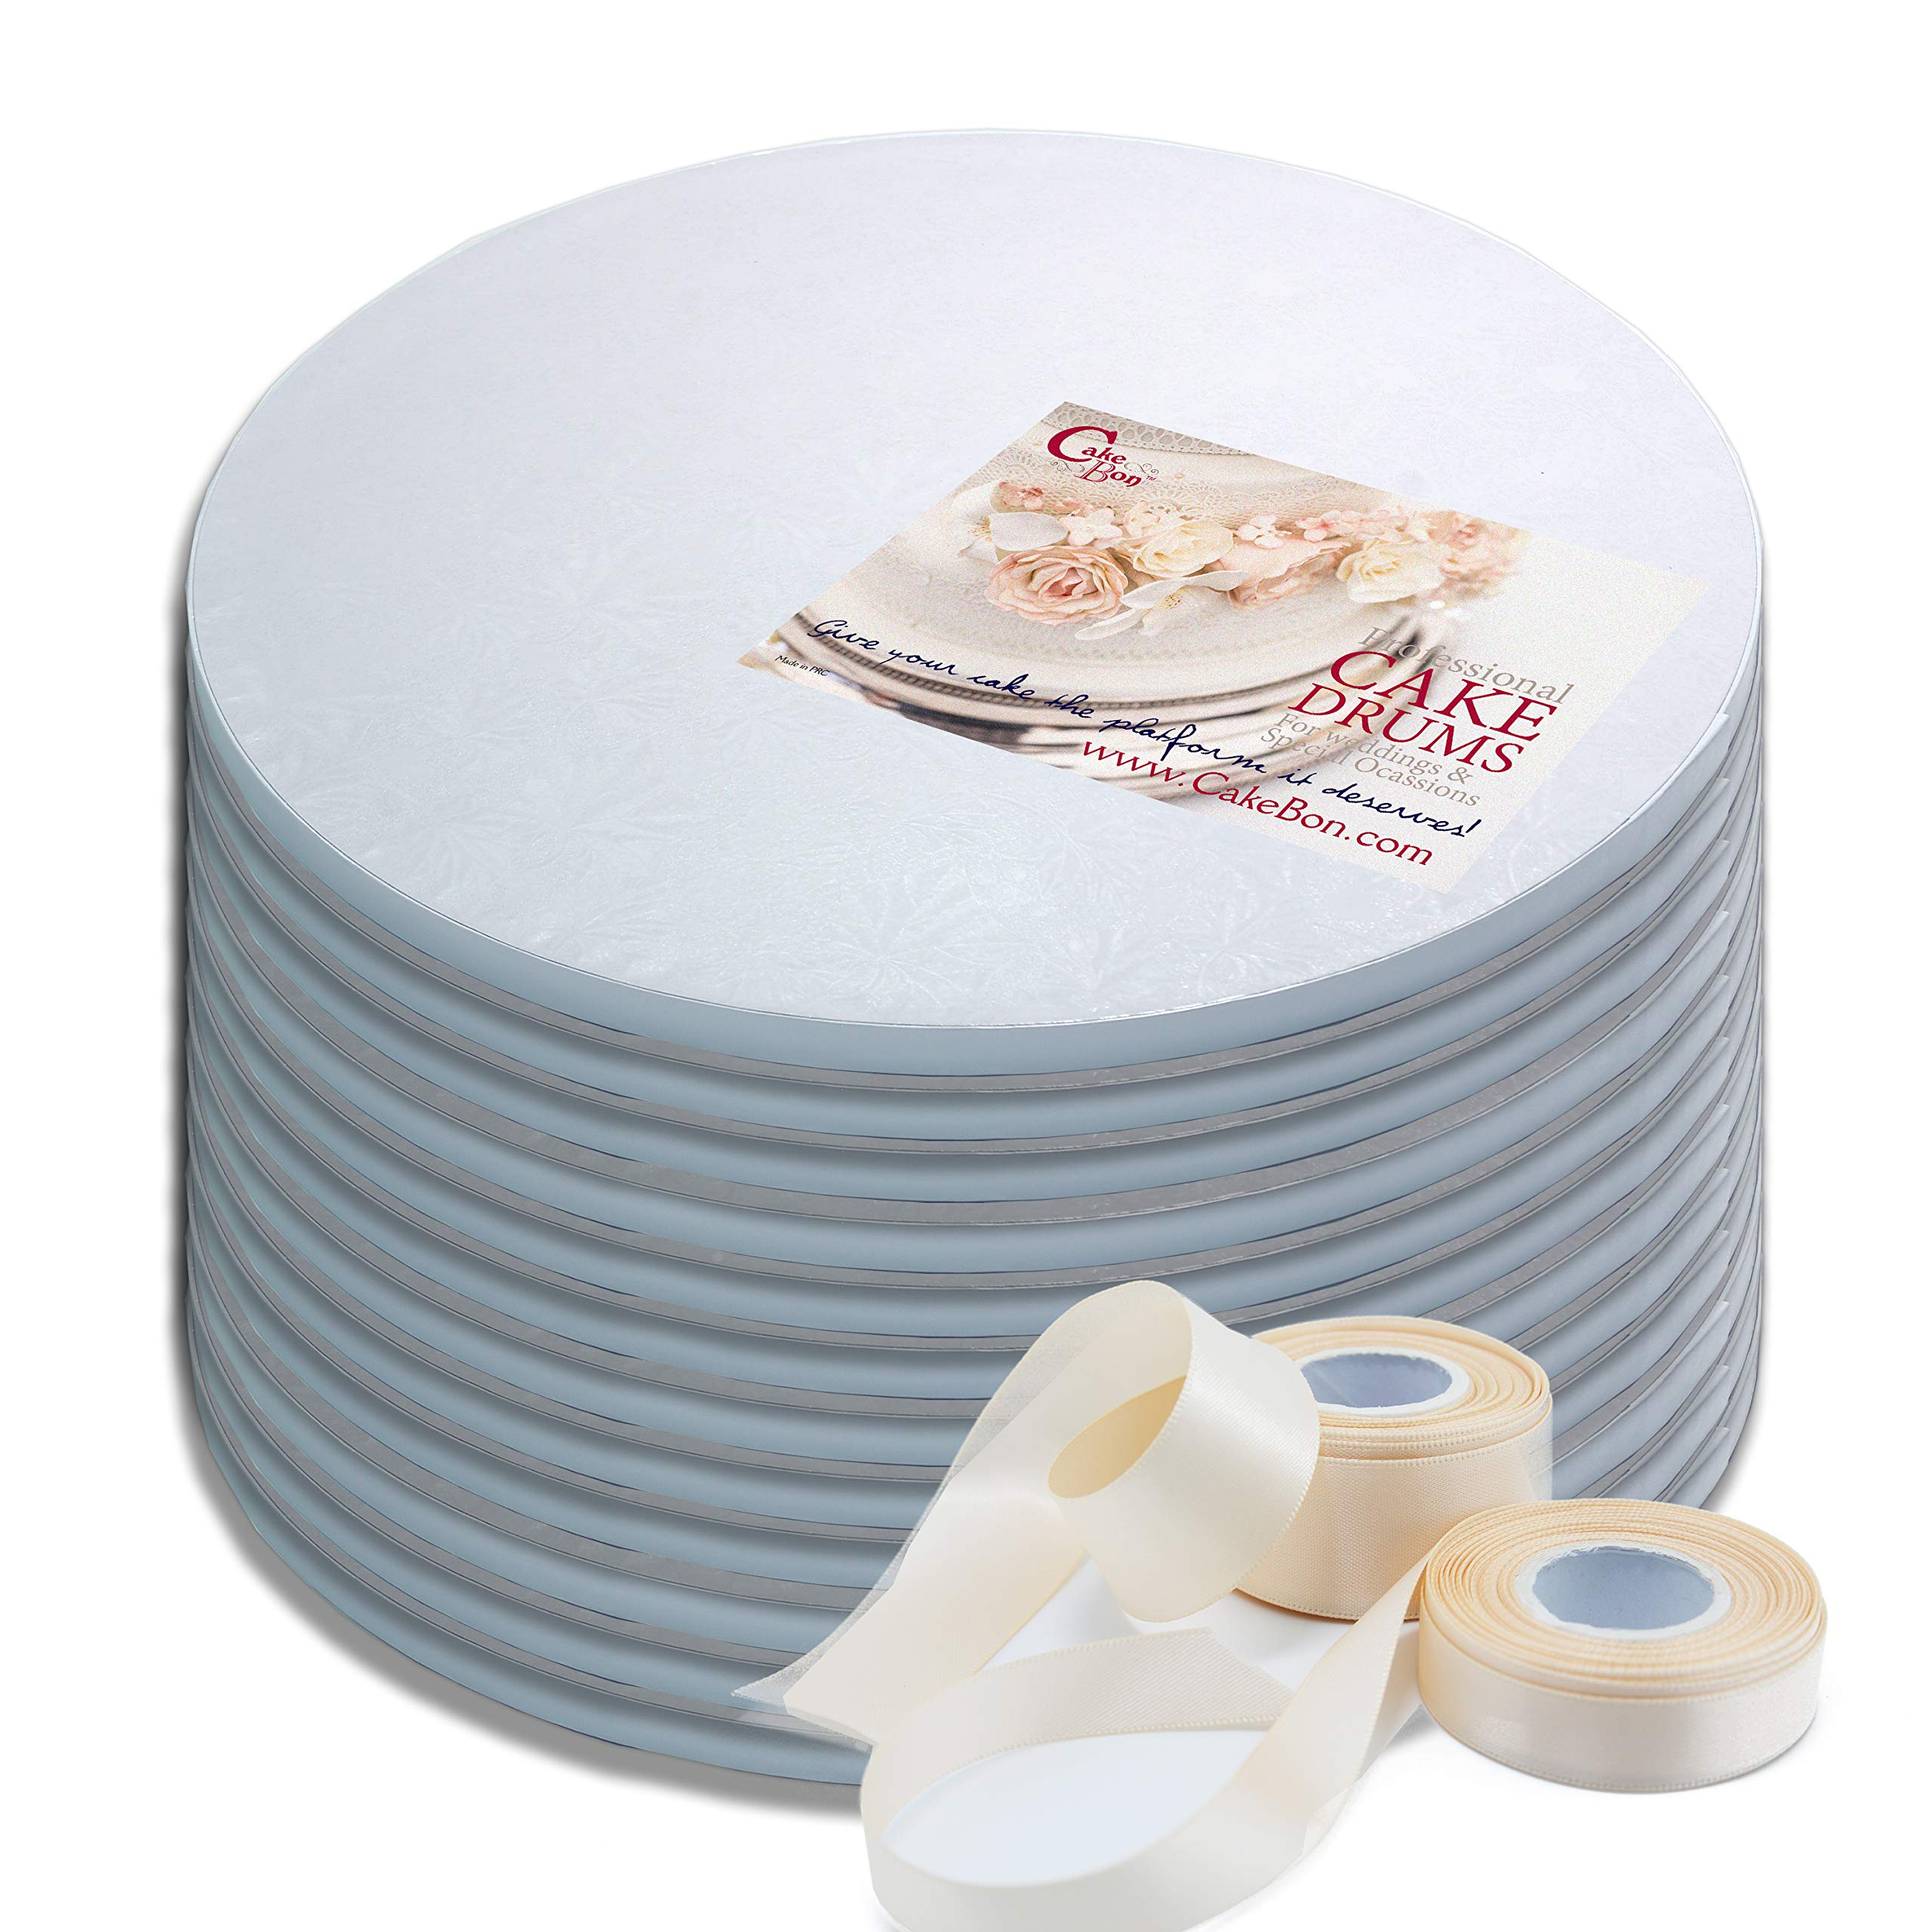 Cake Drums Round 14 Inches - Sturdy 1/2 Inch Thick - Professional Smooth Straight Edges - FREE Satin Cake Ribbon (White, 12-Pack)